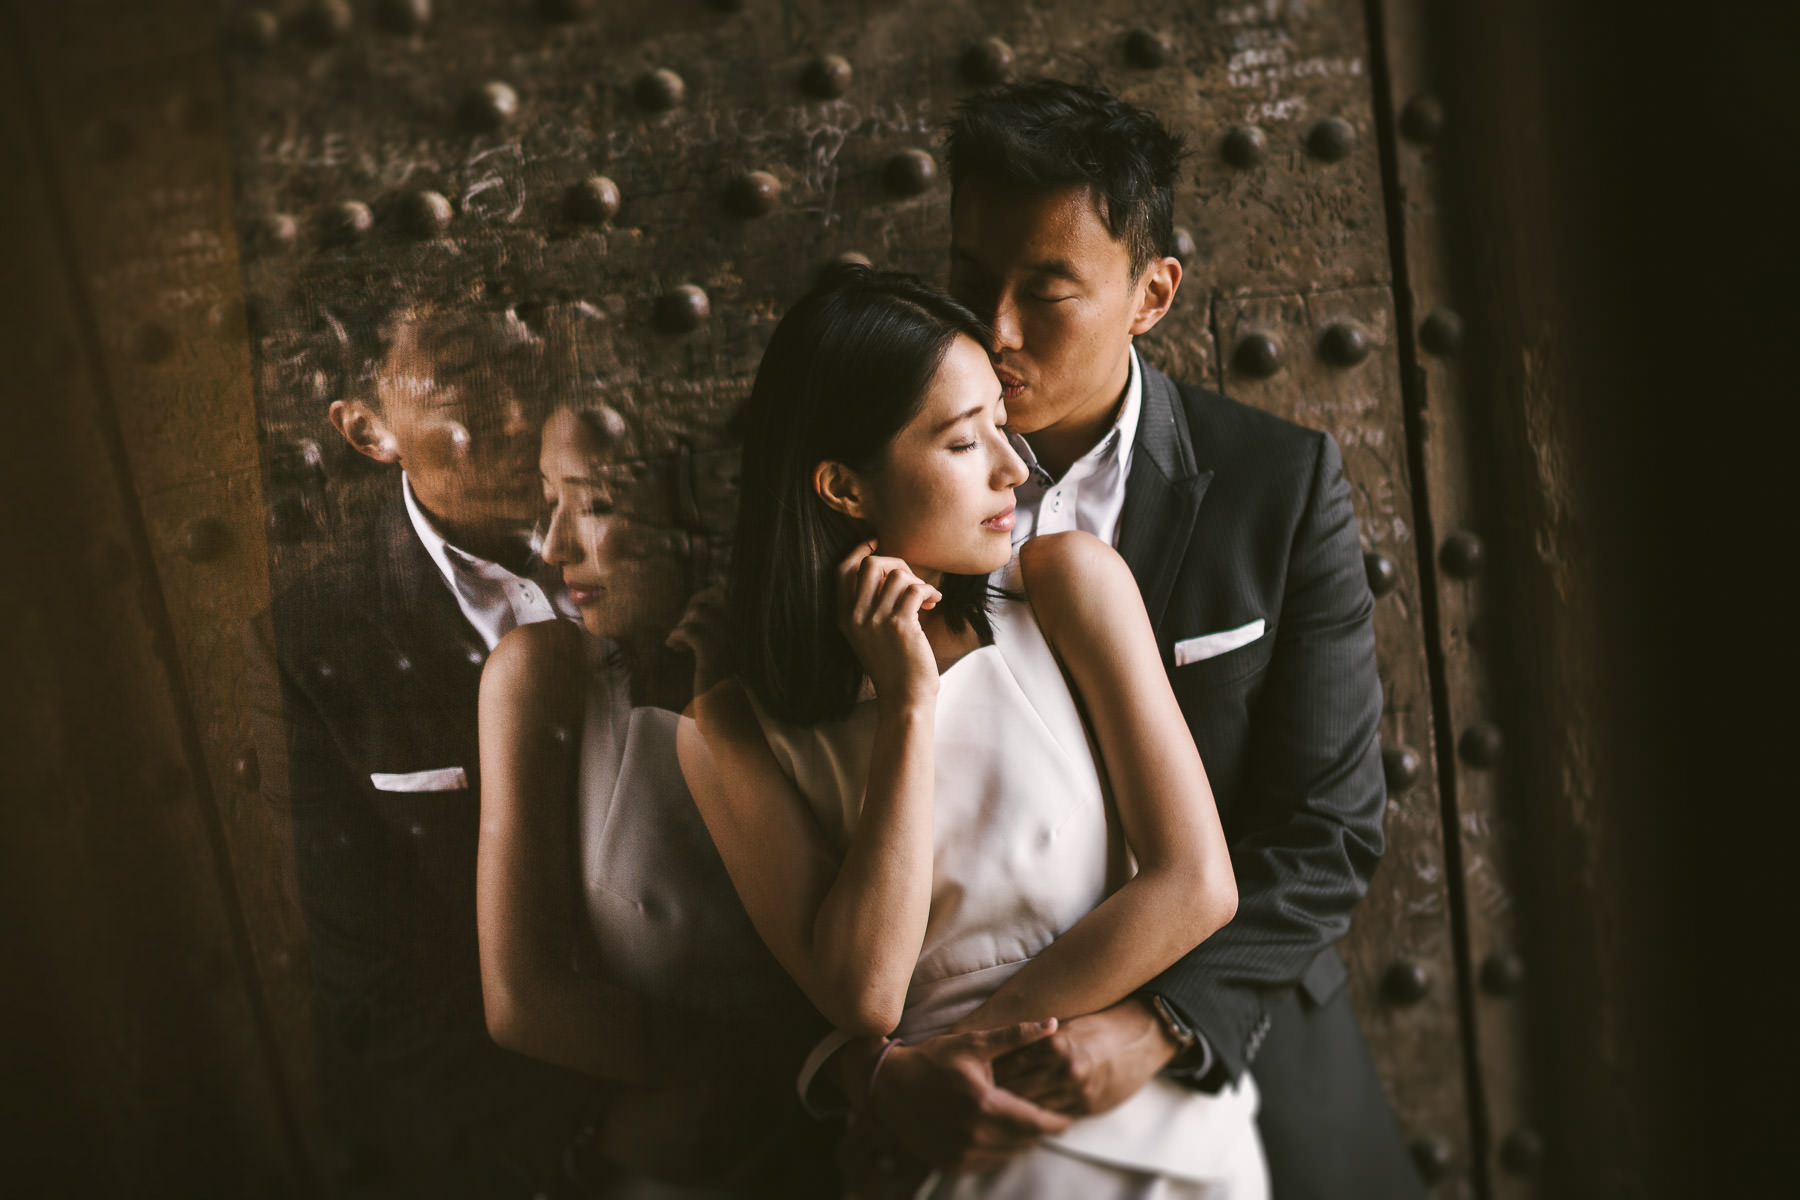 Prewedding photo shoot in Florence: romantic unforgettable memories